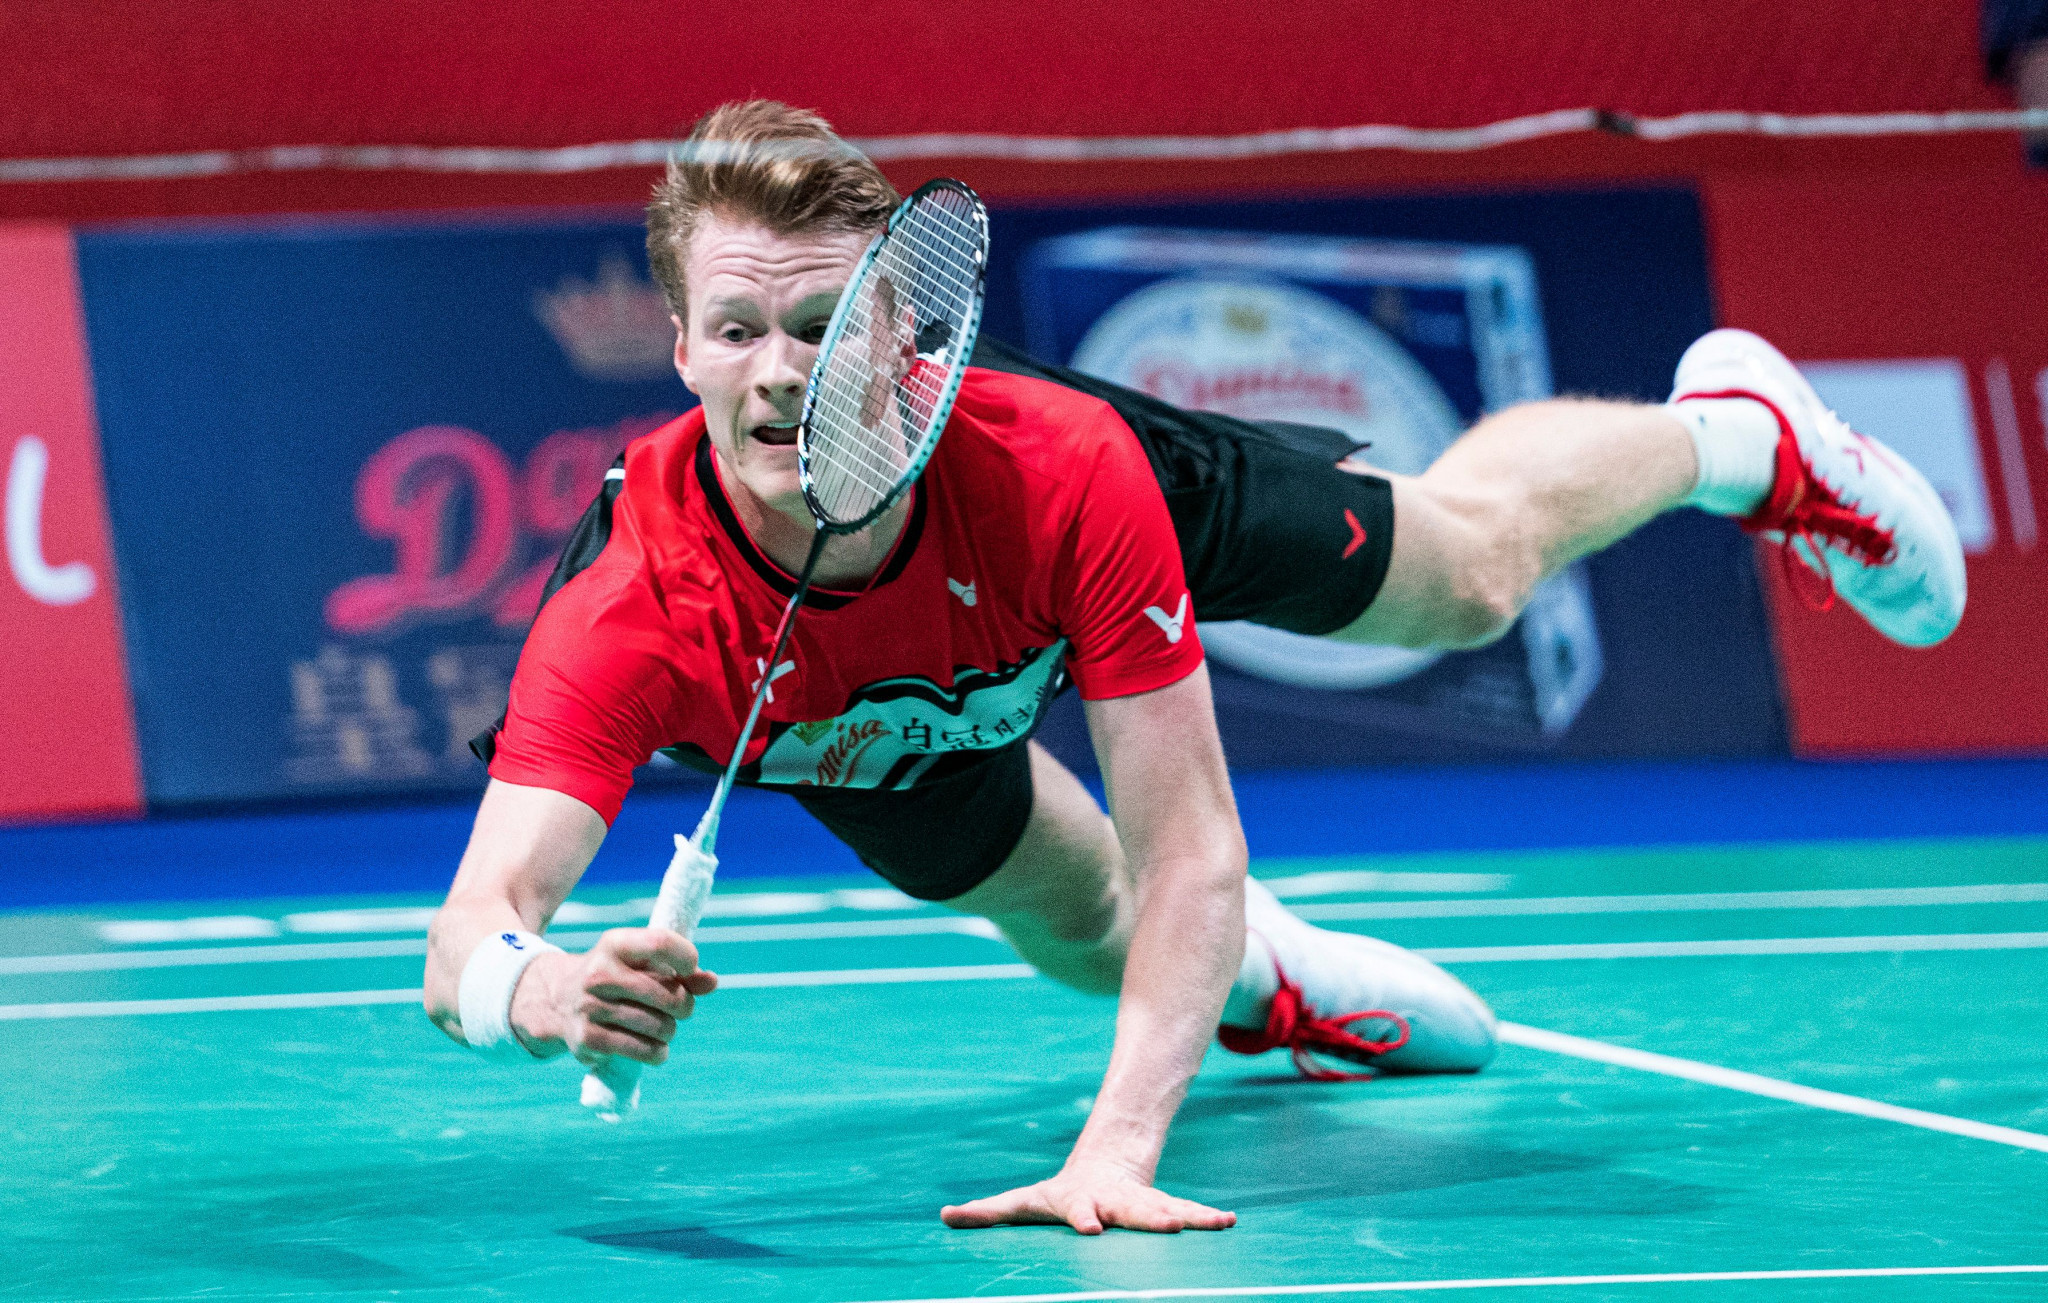 Denmark and Germany to face off in European Mixed Team Badminton Championship semi-finals